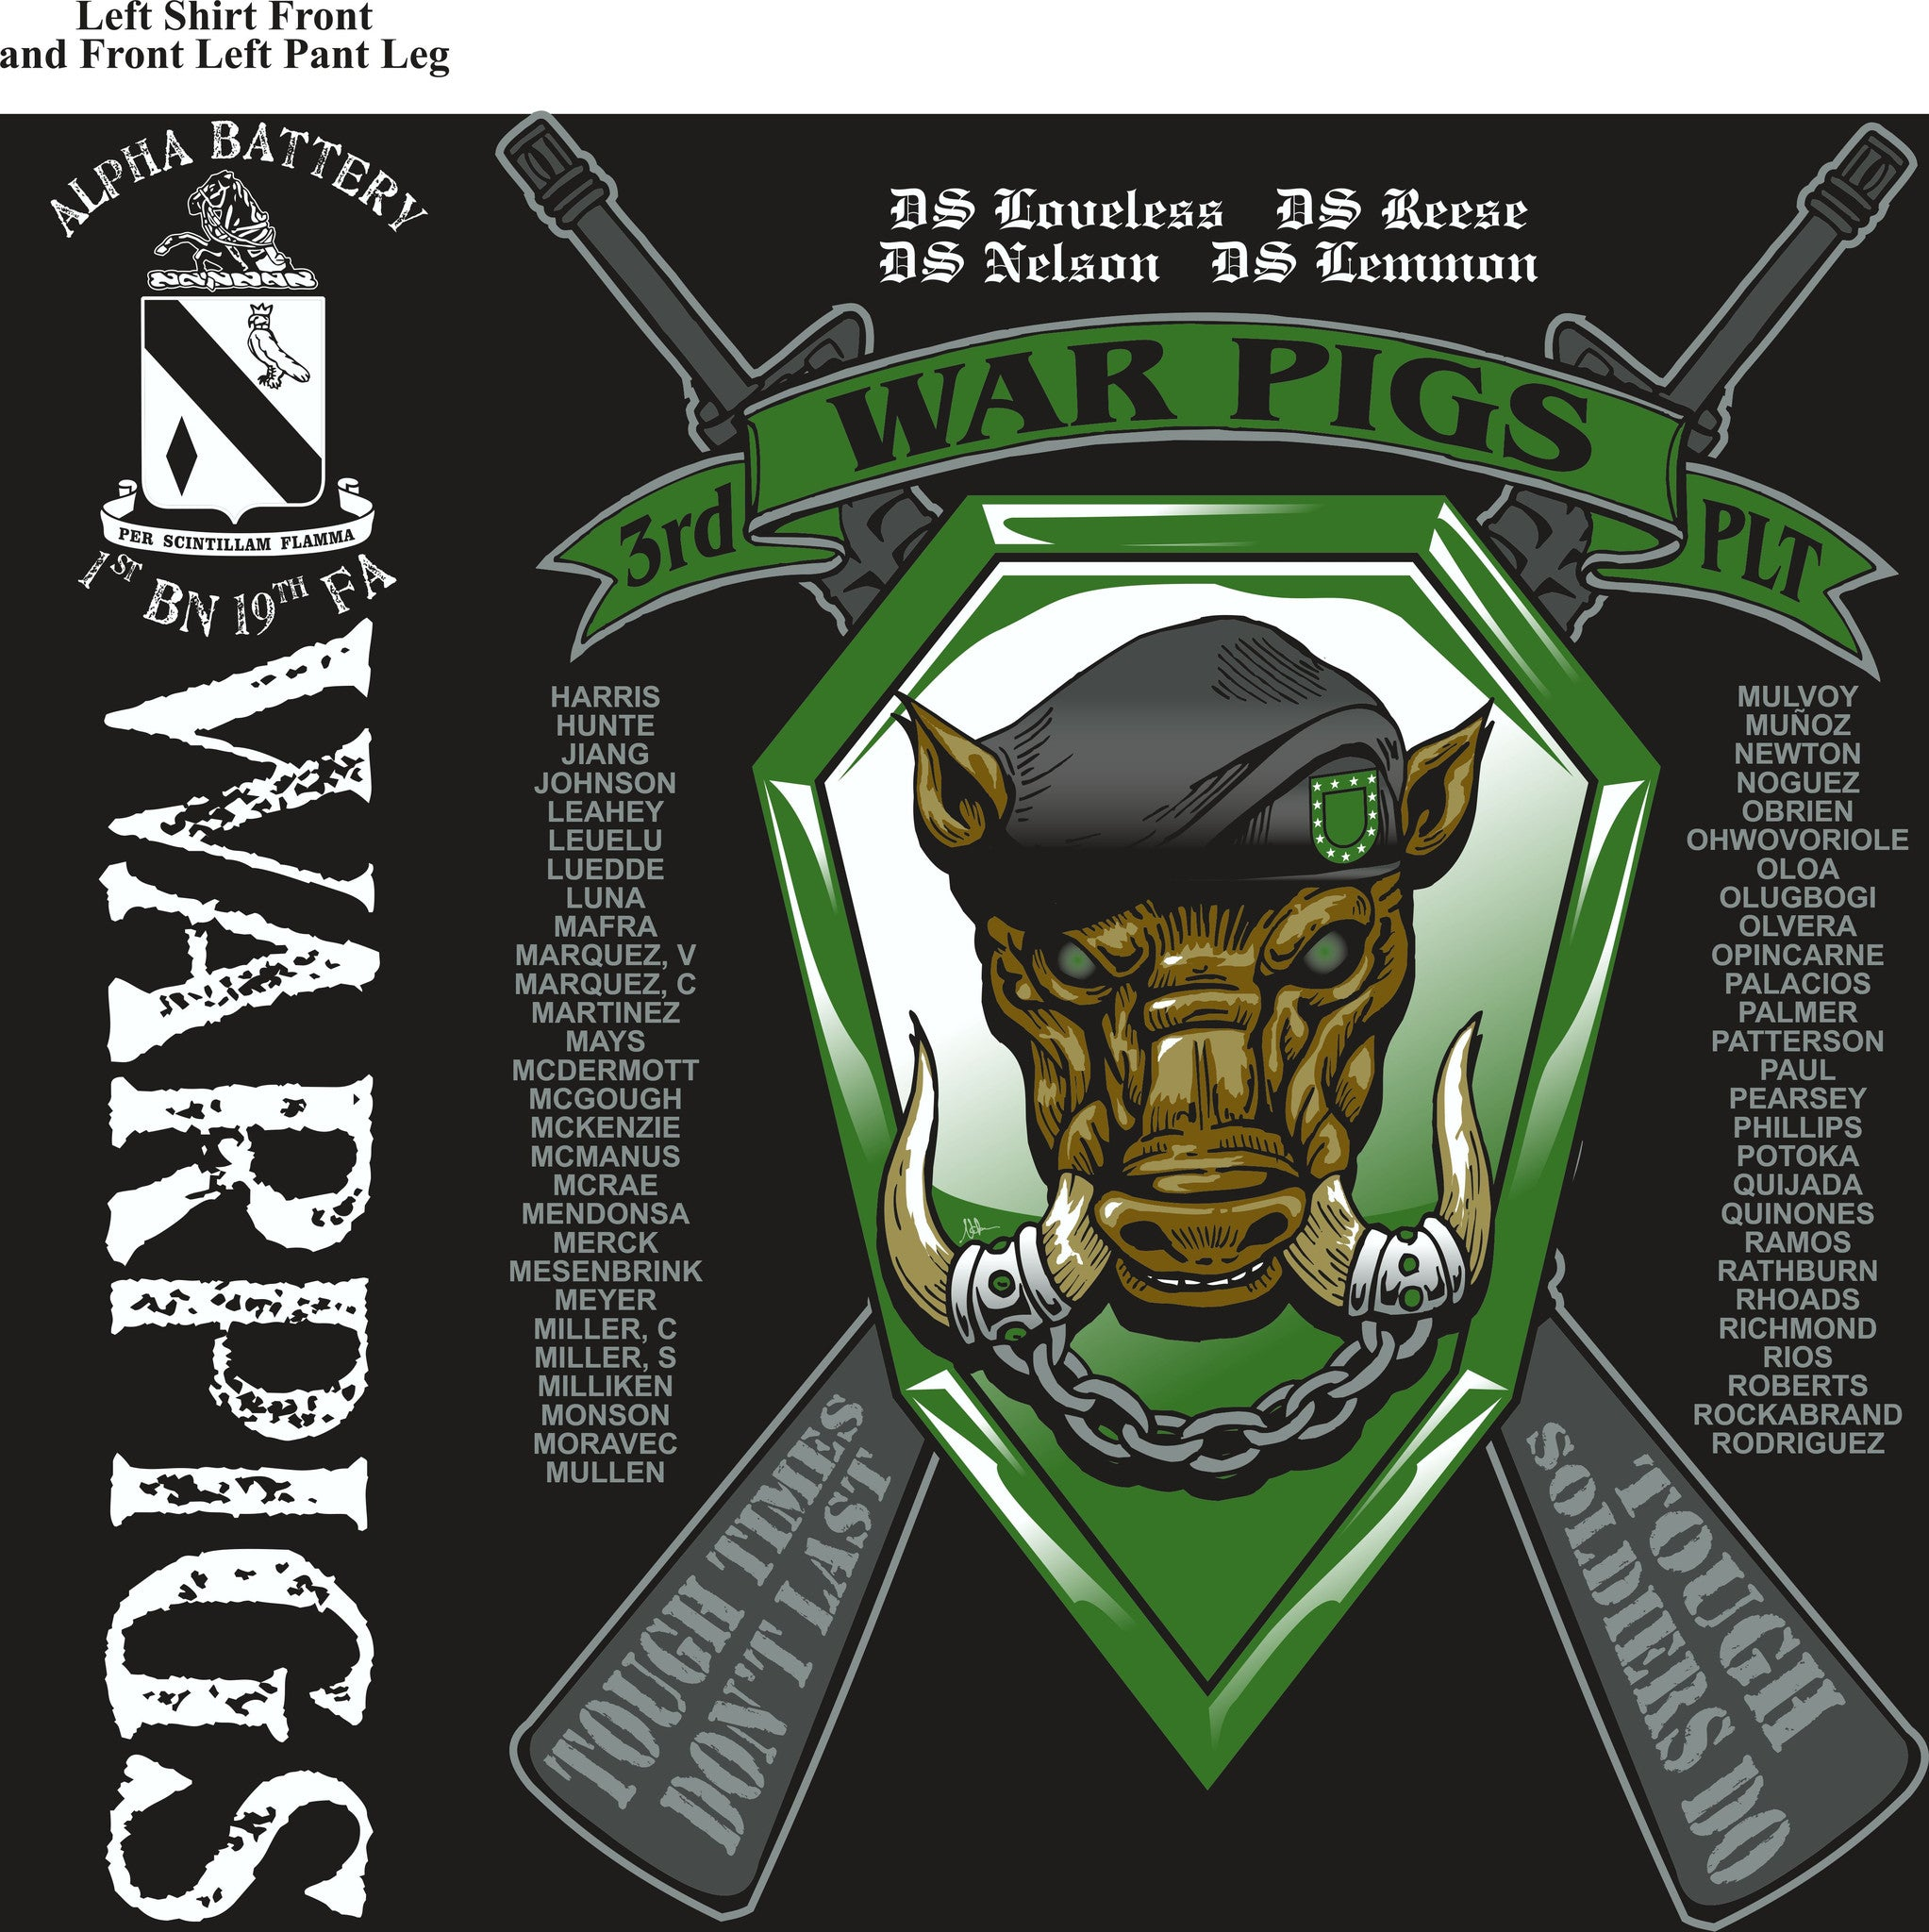 PLATOON SHIRTS (2nd generation print) ALPHA 1st 19th WARPIGS DEC 2016